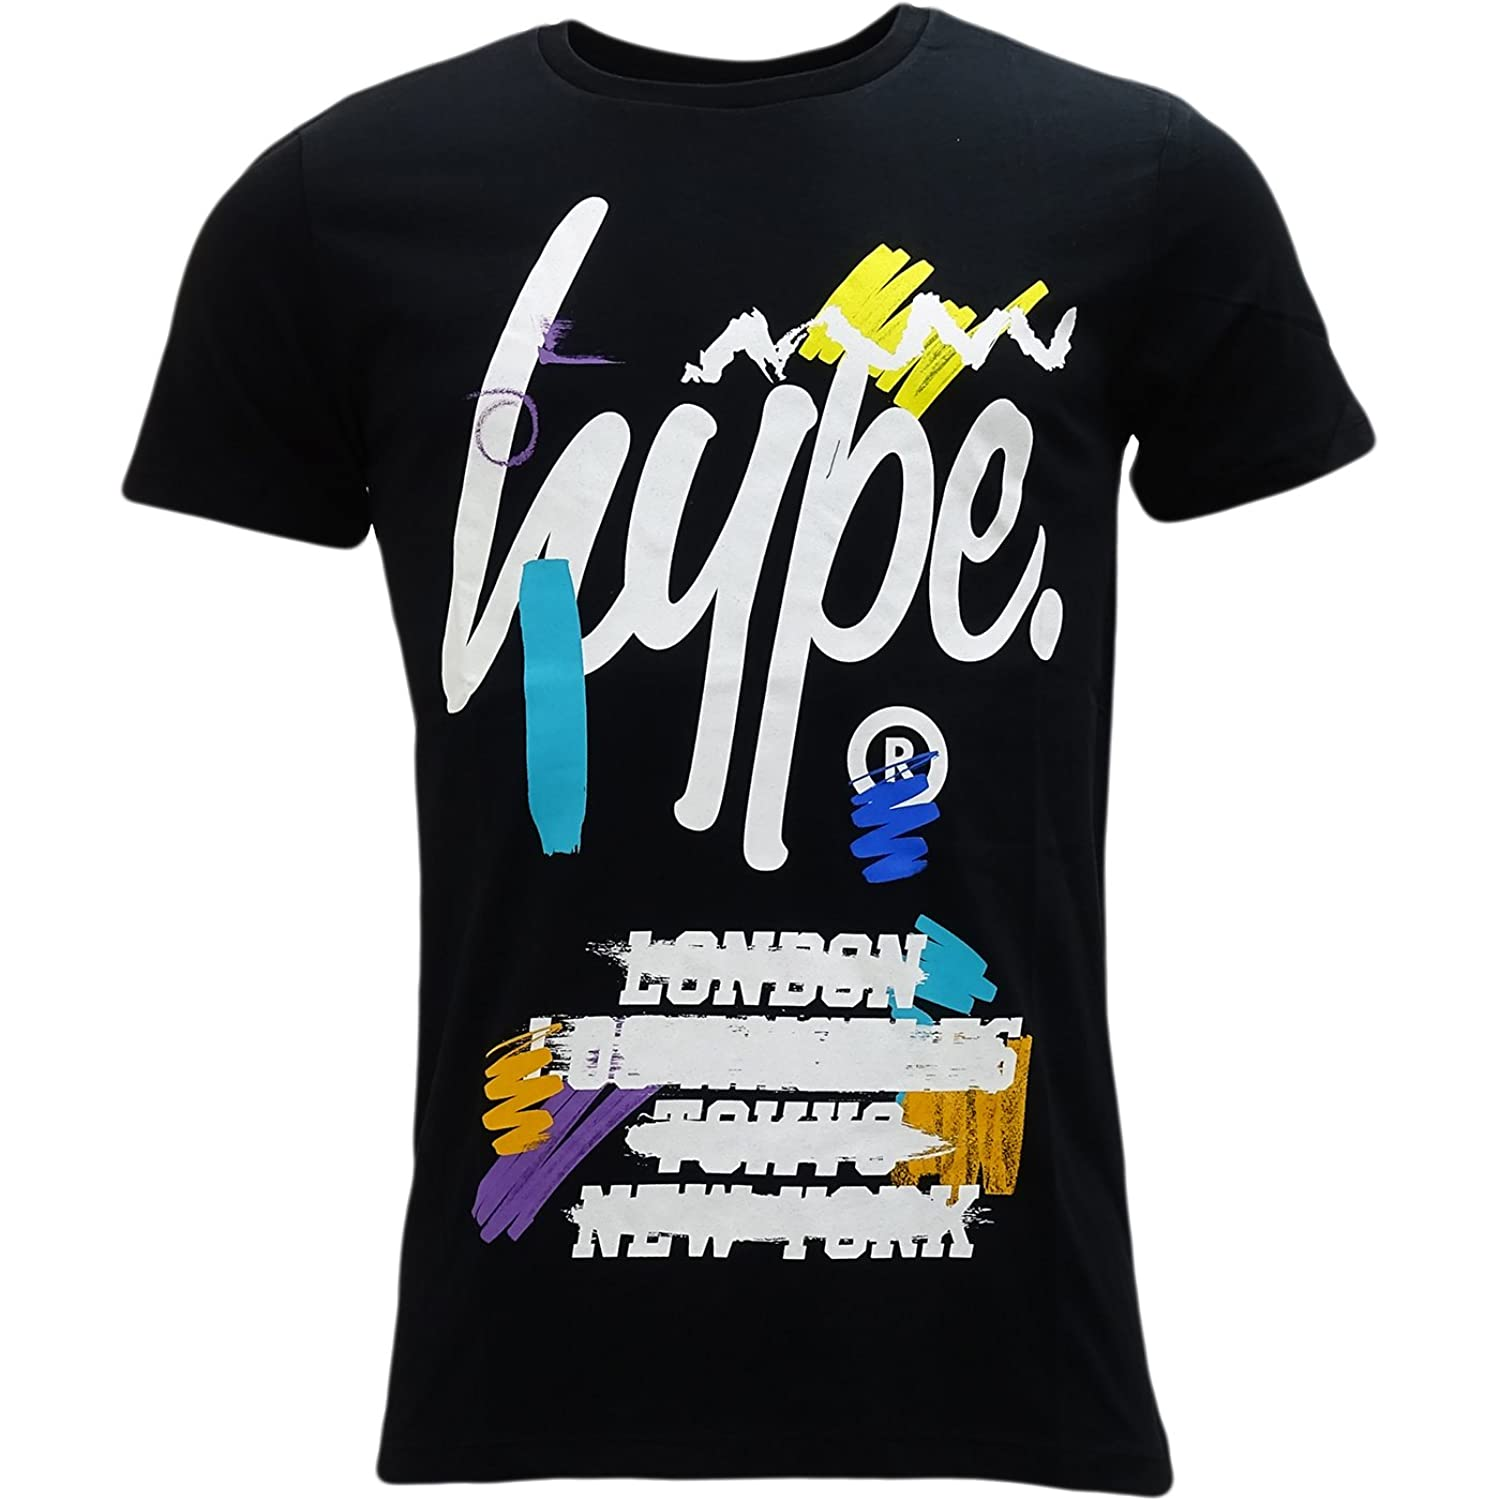 *NEW* HYPE T SHIRT - Boys / Mens Just Hype T-Shirts -